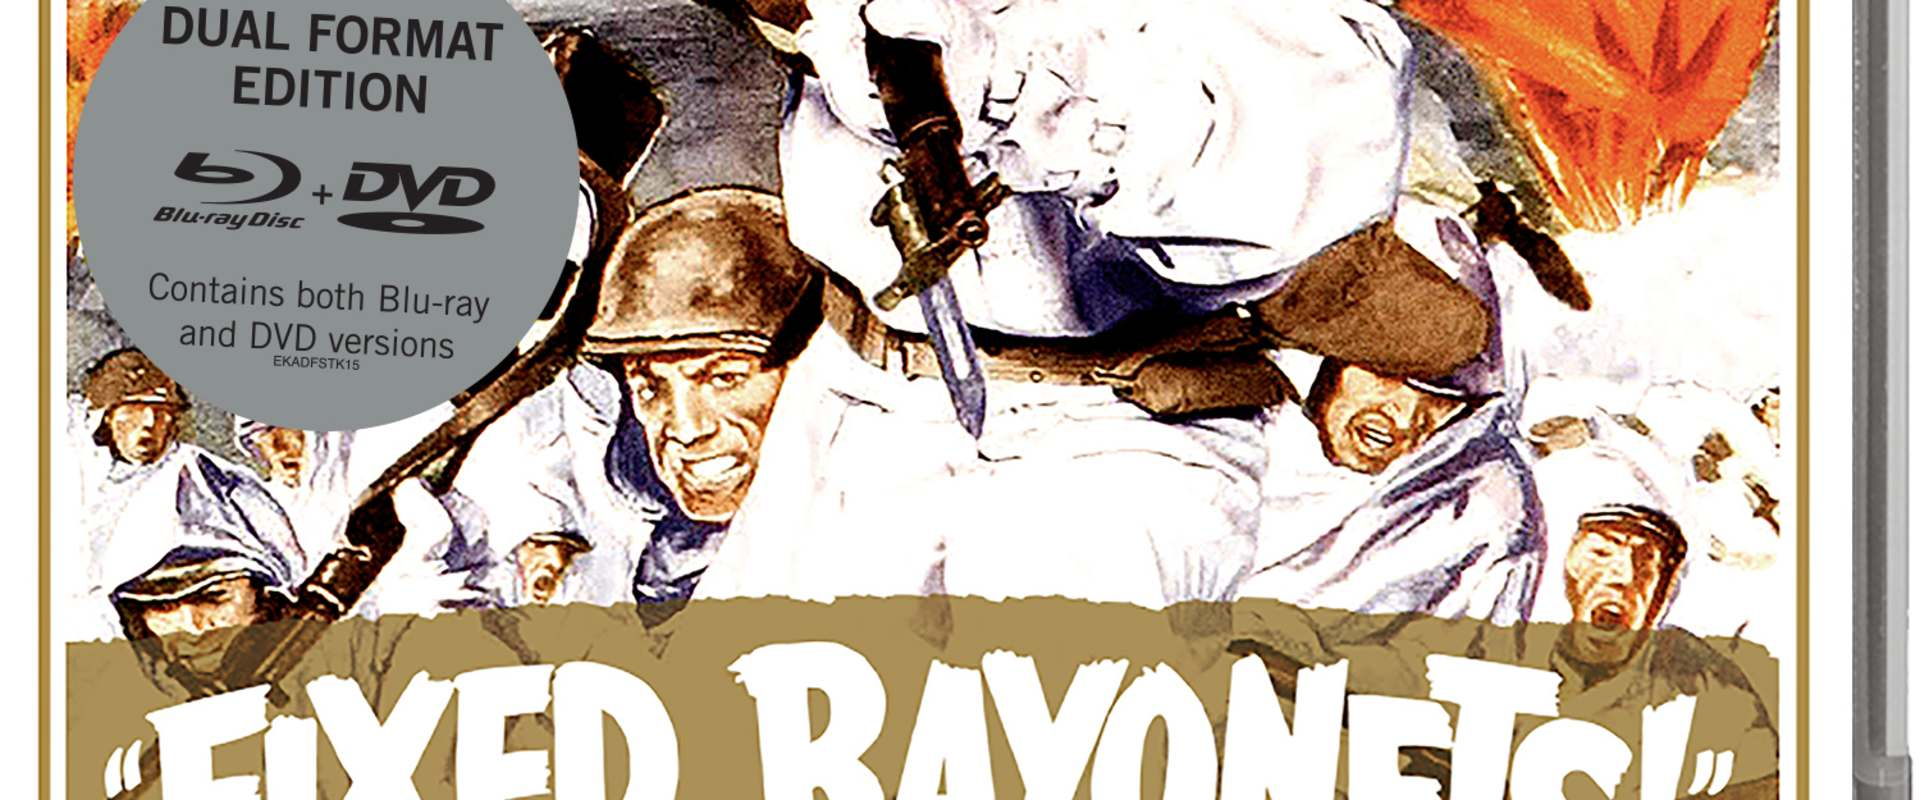 Fixed Bayonets! background 2